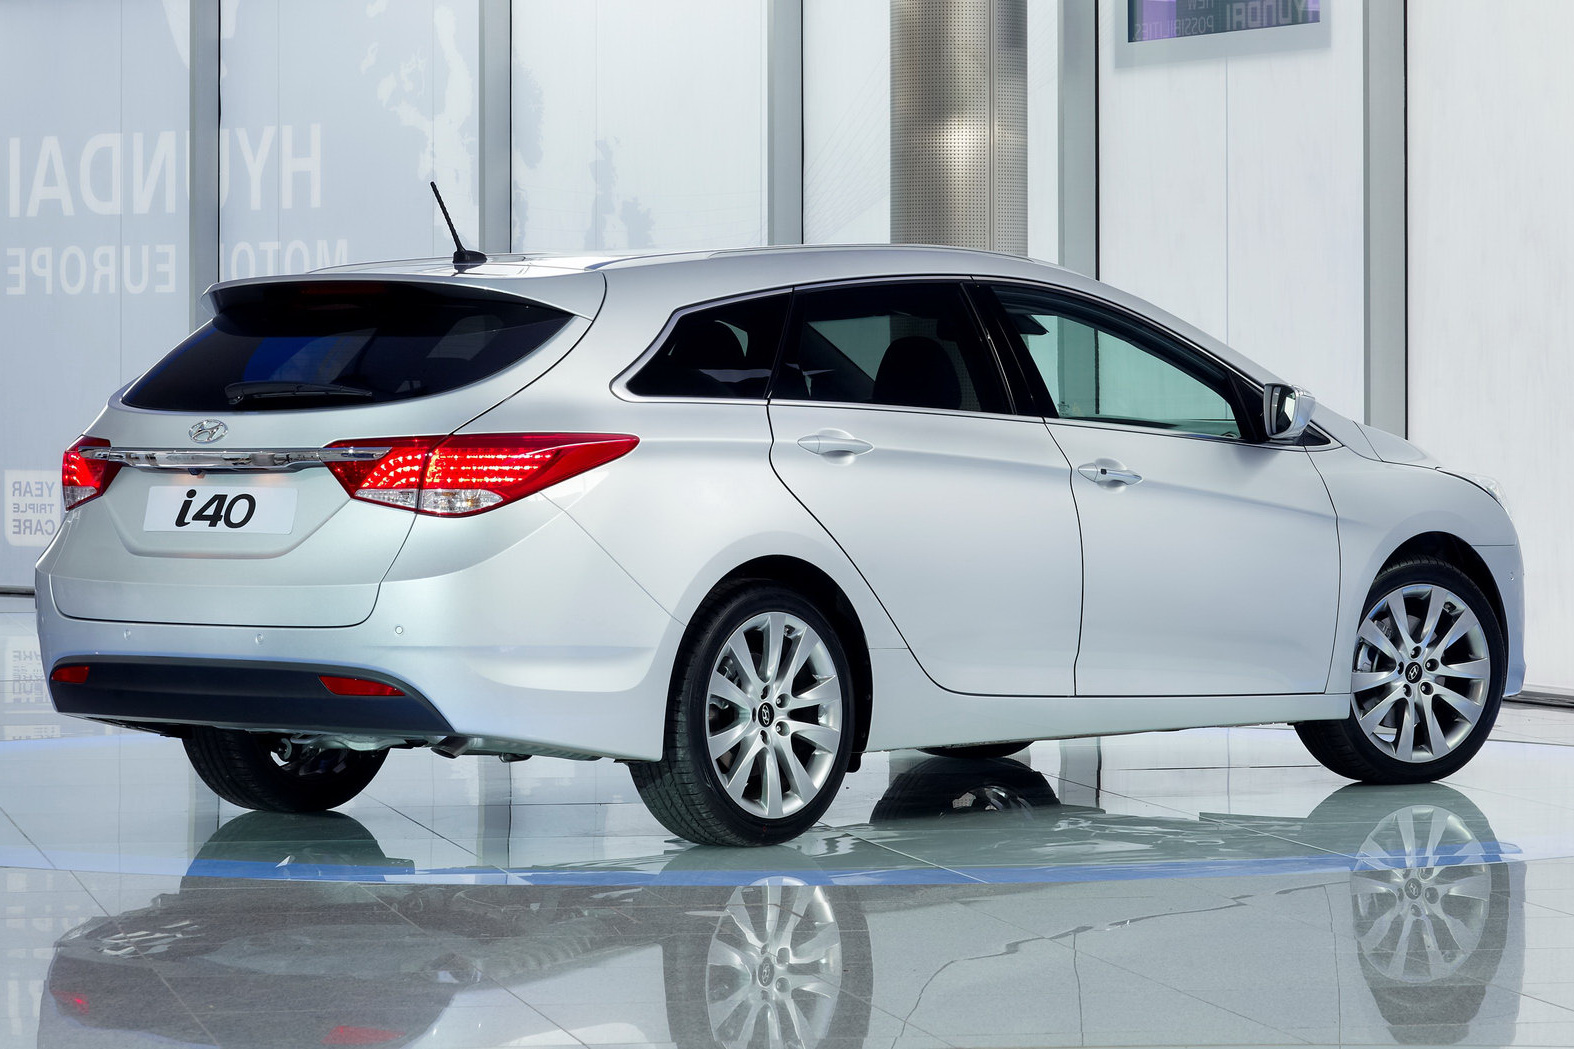 New Cars And Bikes In India Hyundai I40 Price In India